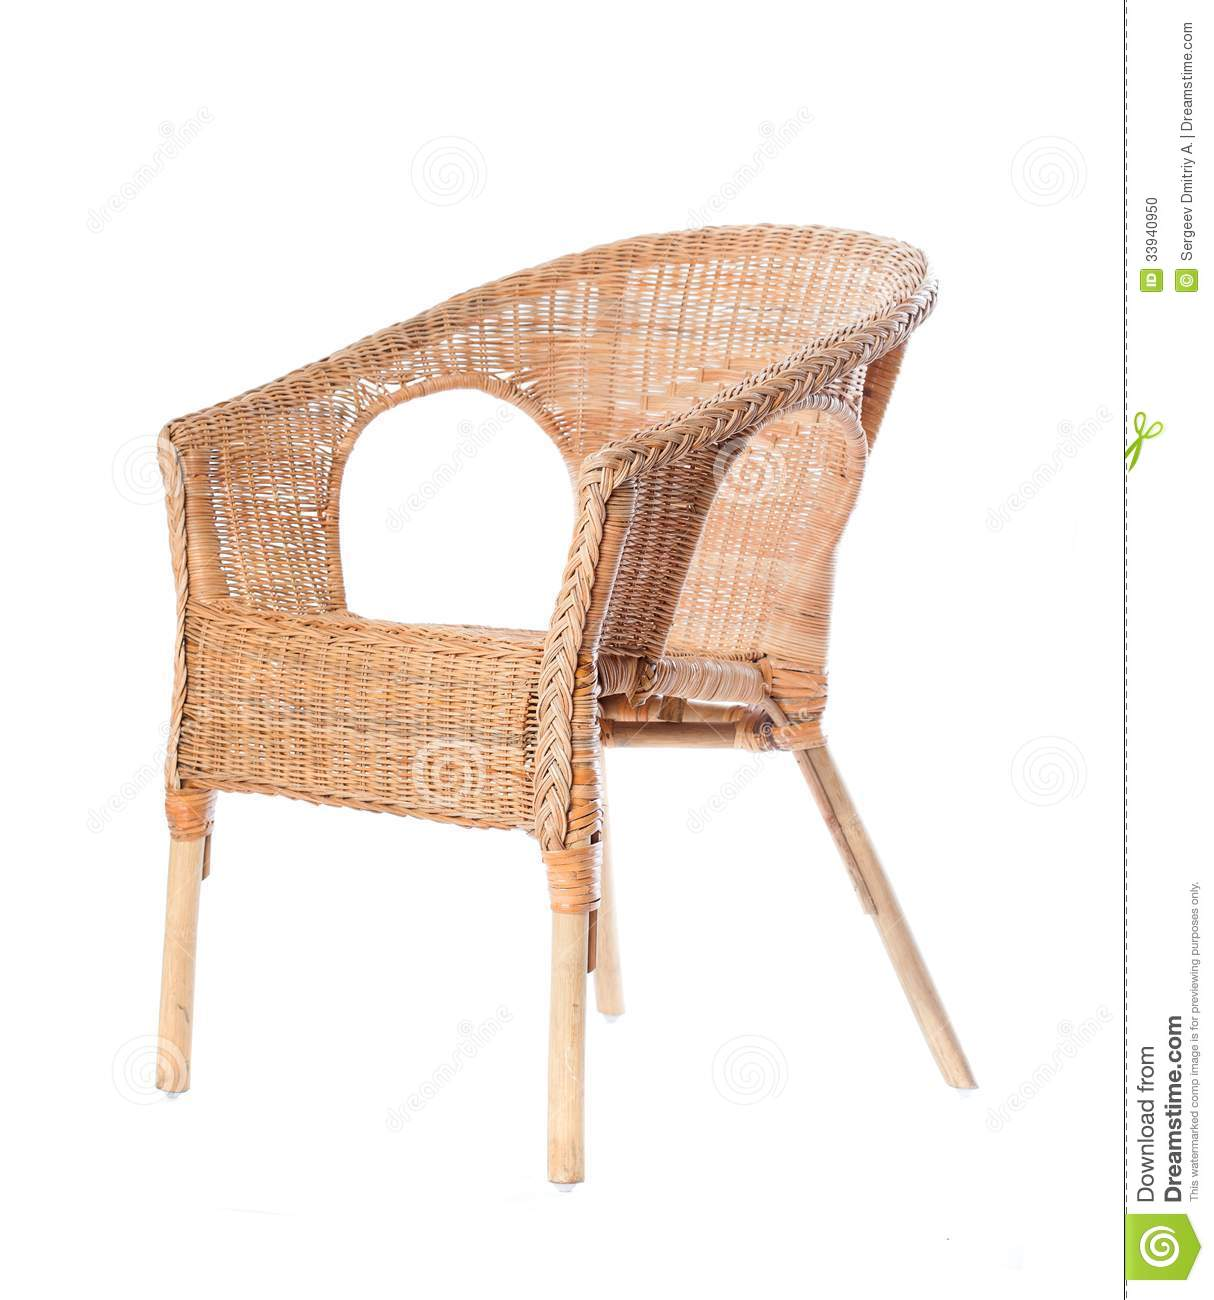 comfortable wicker chairs safety 1st 5 piece childrens table and chair set in a studio stock photo image